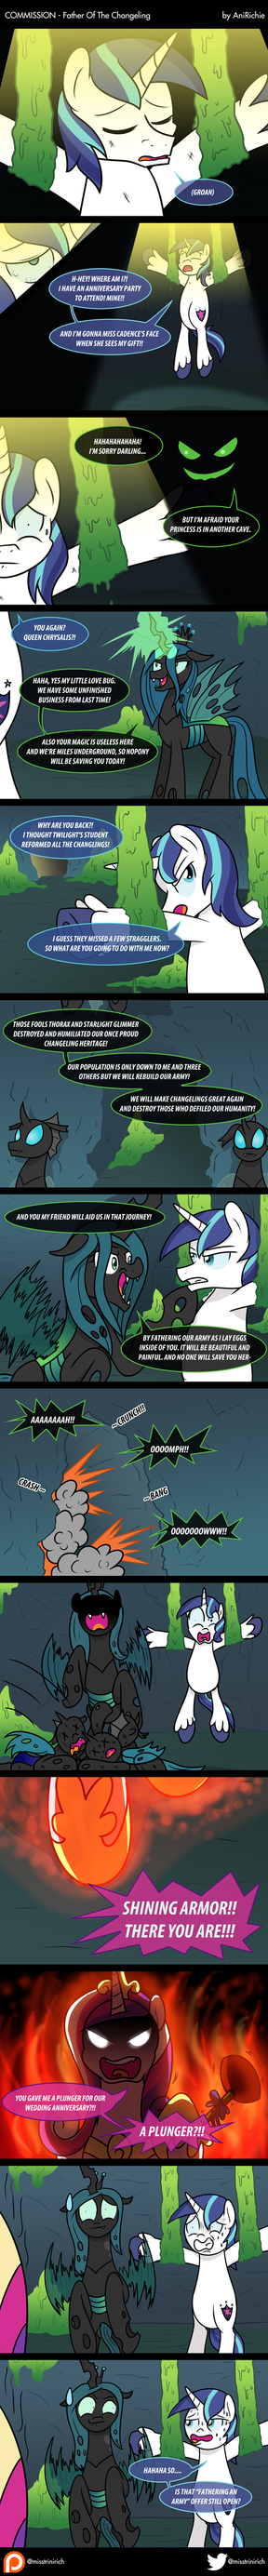 COM - Father Of The Changeling (COMIC) by AniRichie-Art